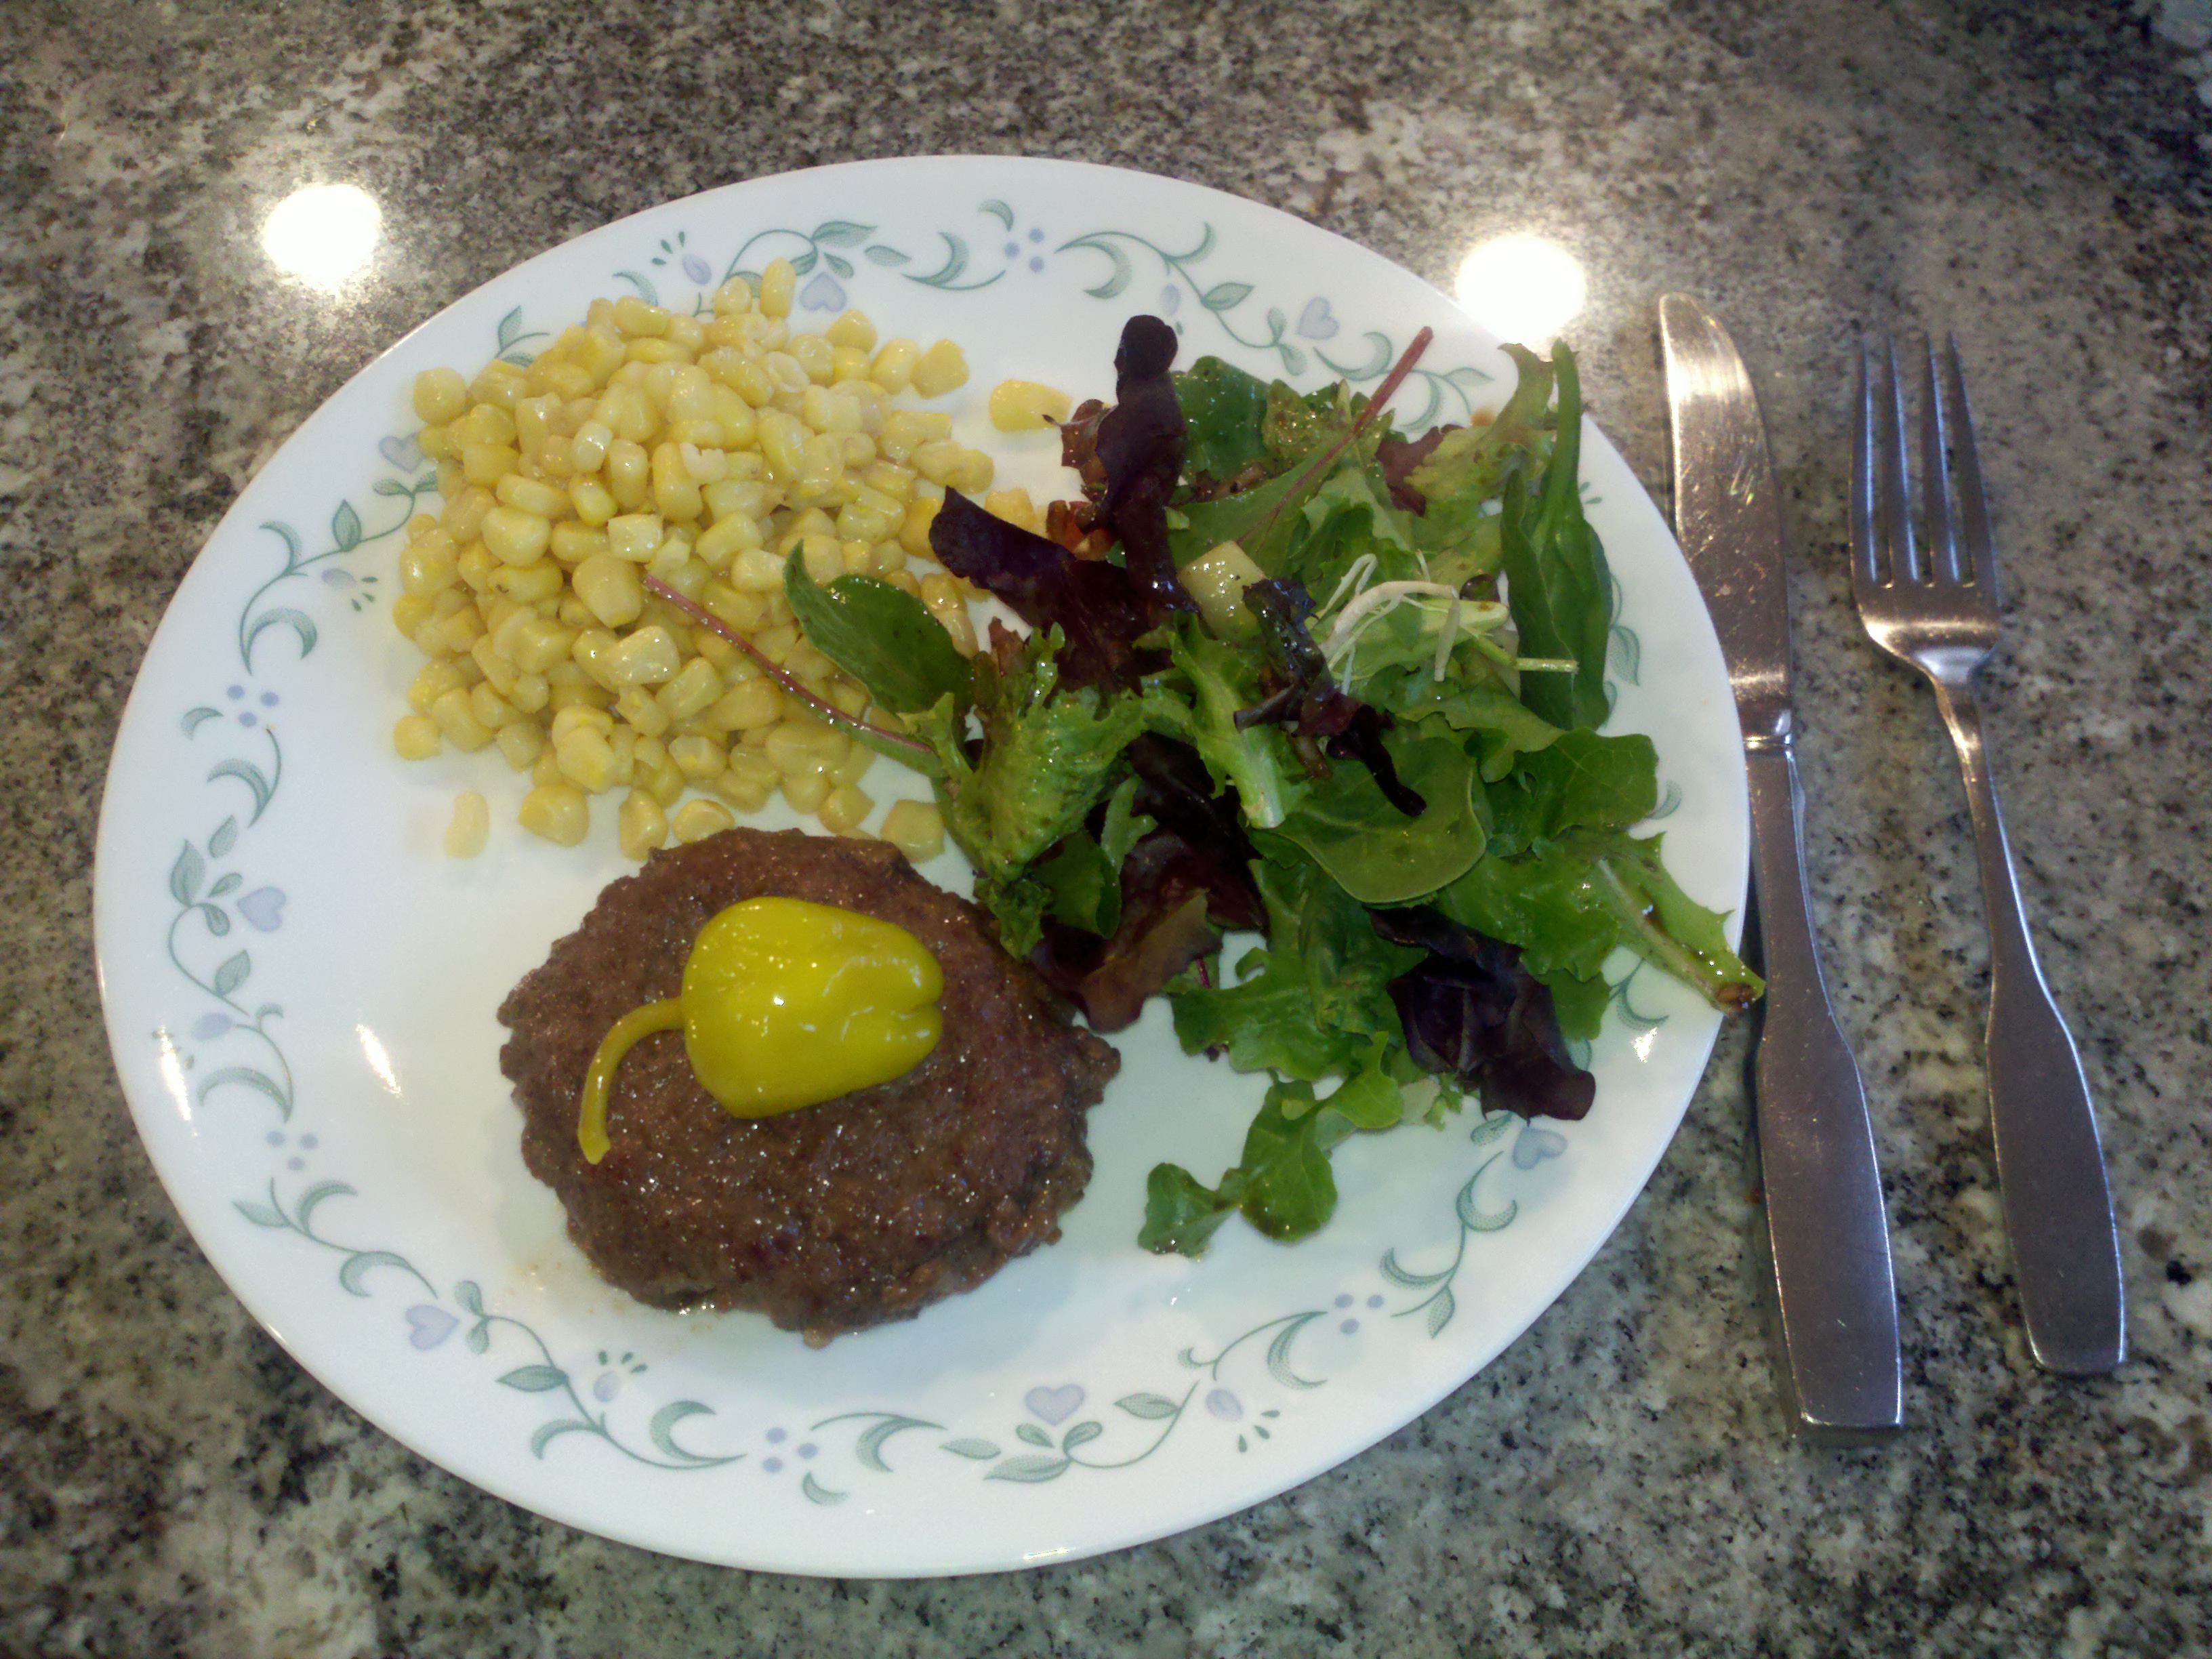 Milford, NH :: hamburger with pepper, corn, and salad